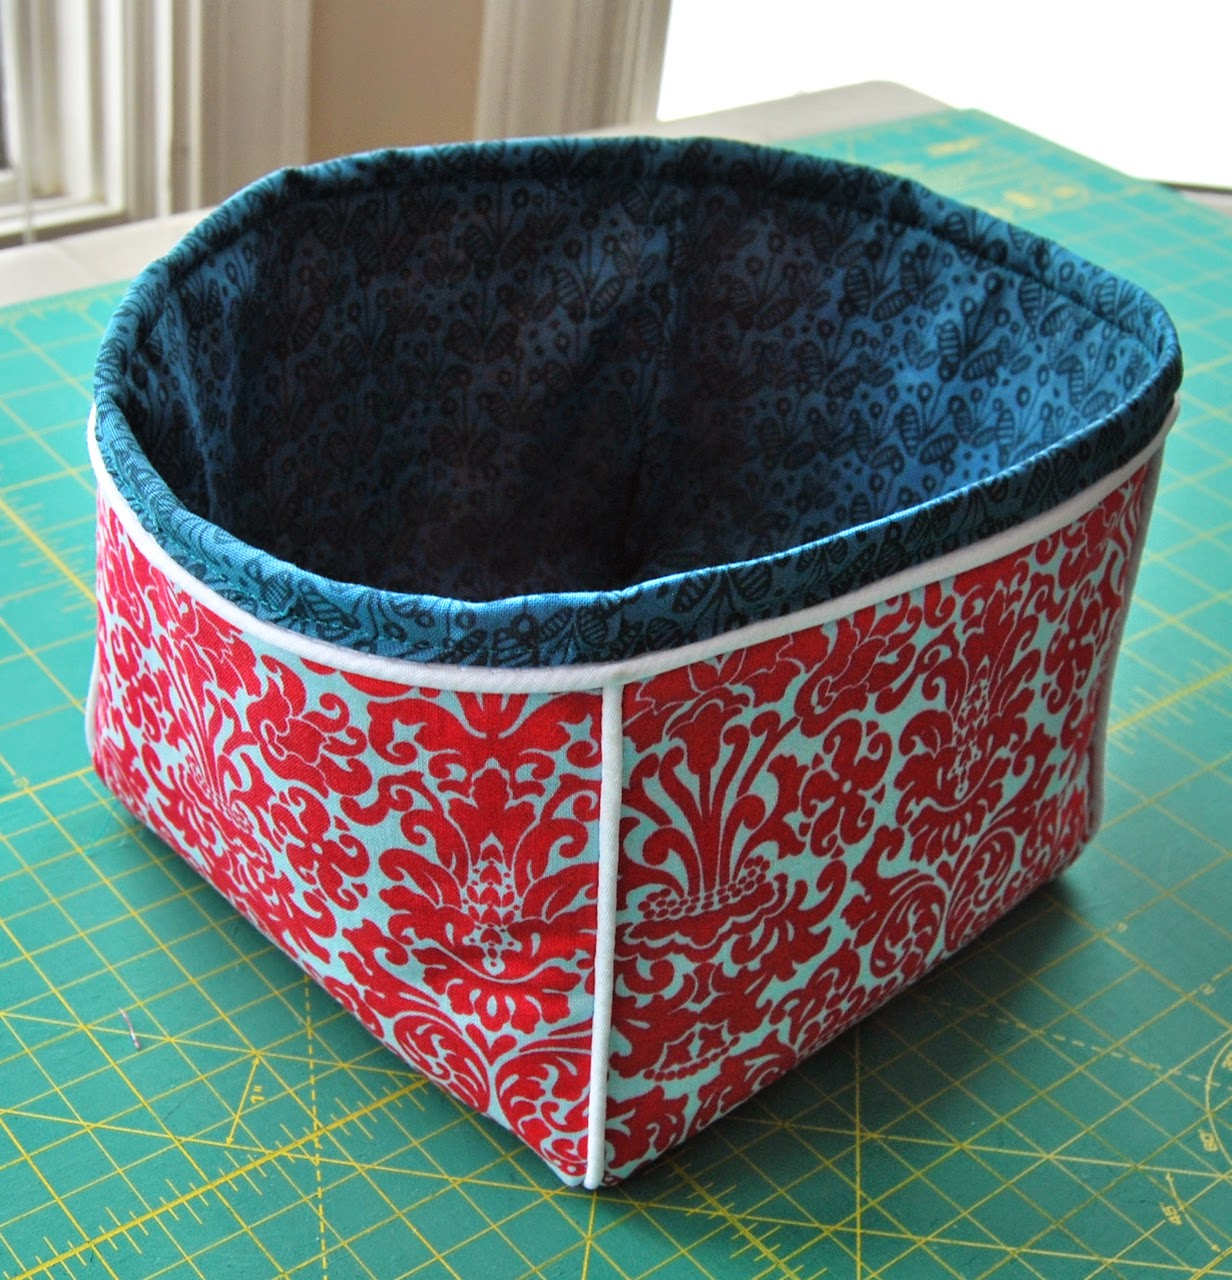 finished body of basket